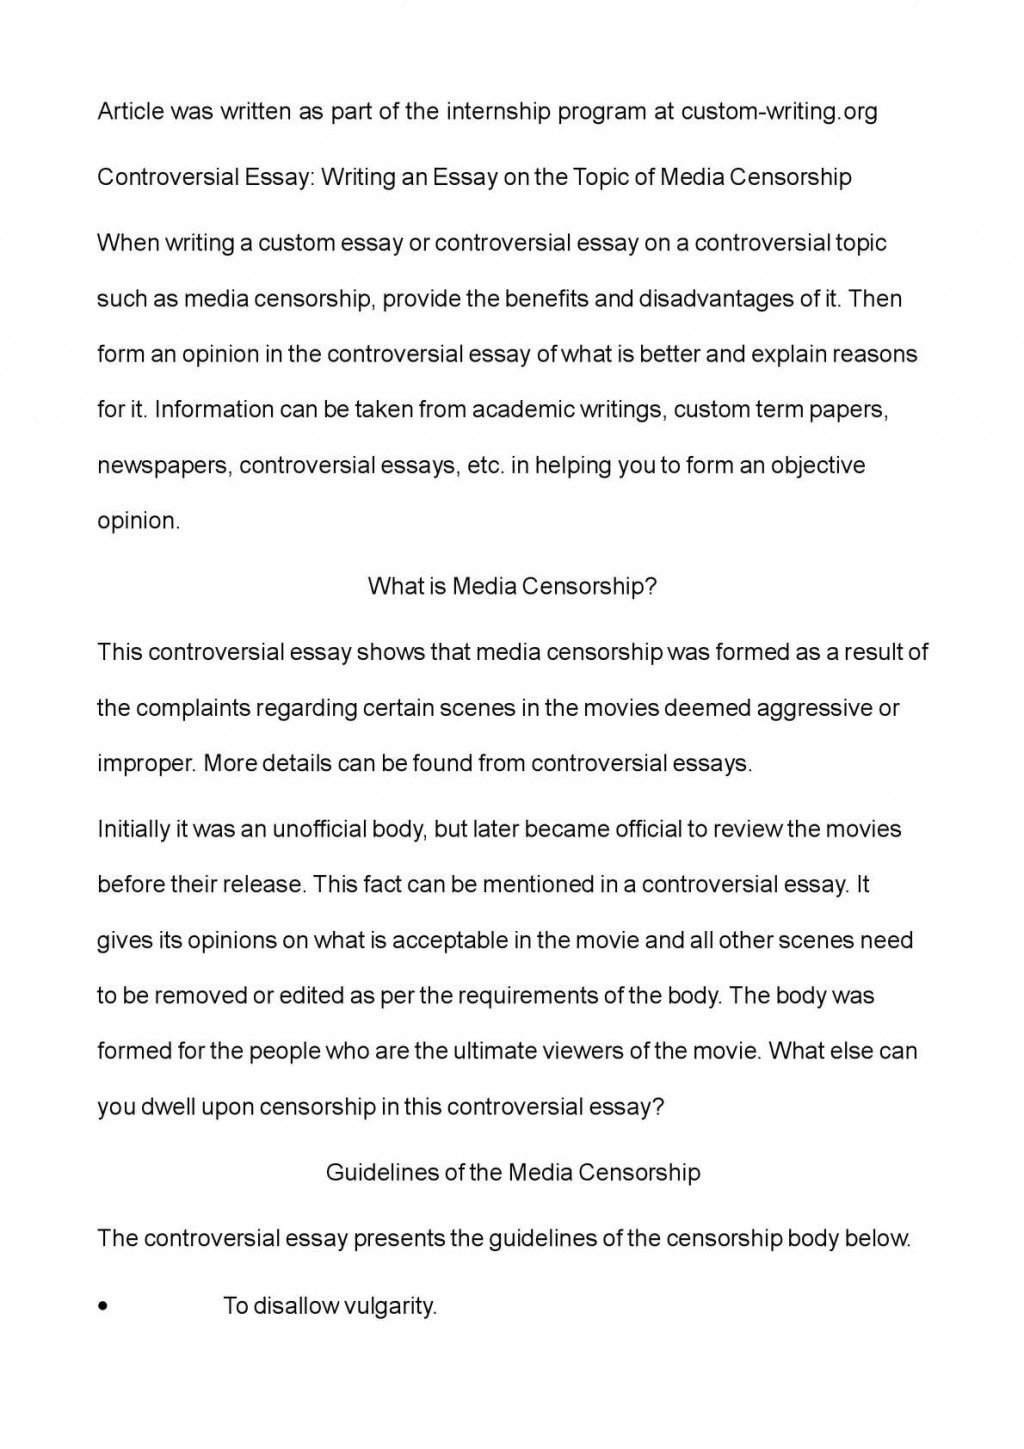 011 Essay Example Controversial Best Topics For High School Students Outline Format On Immigration Large